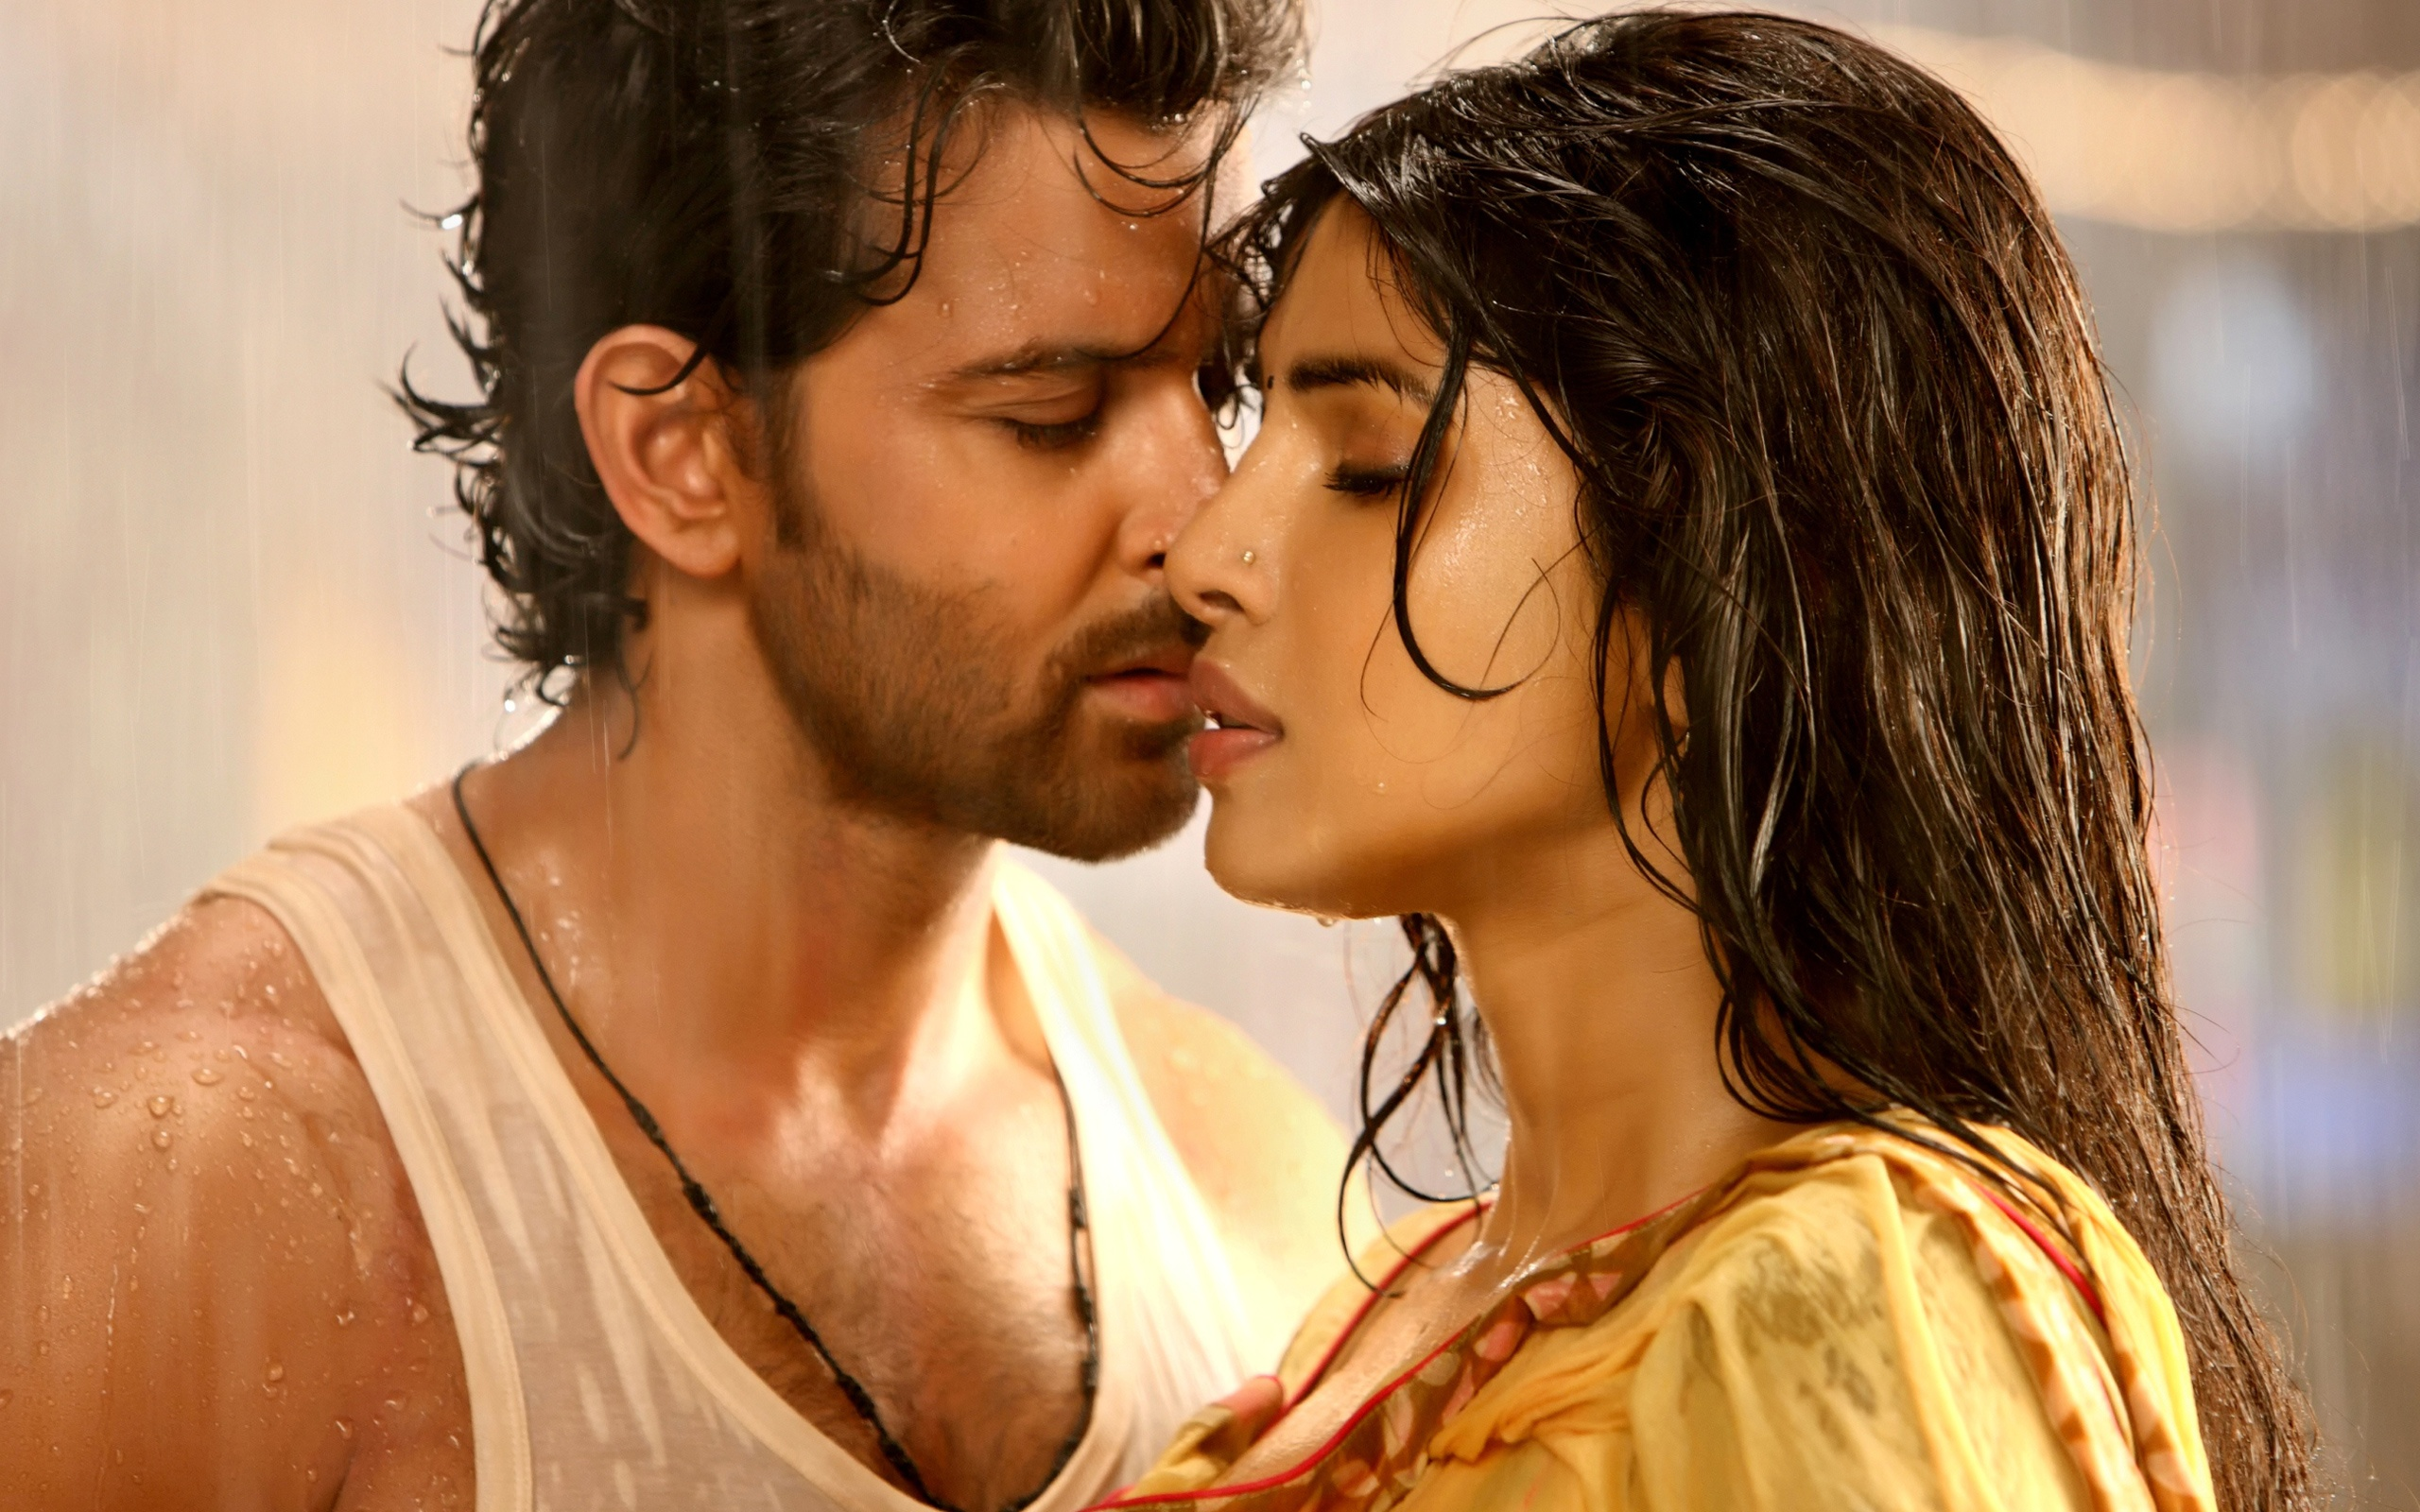 hrithik priyanka chopra in agneepath wallpapers in jpg format for